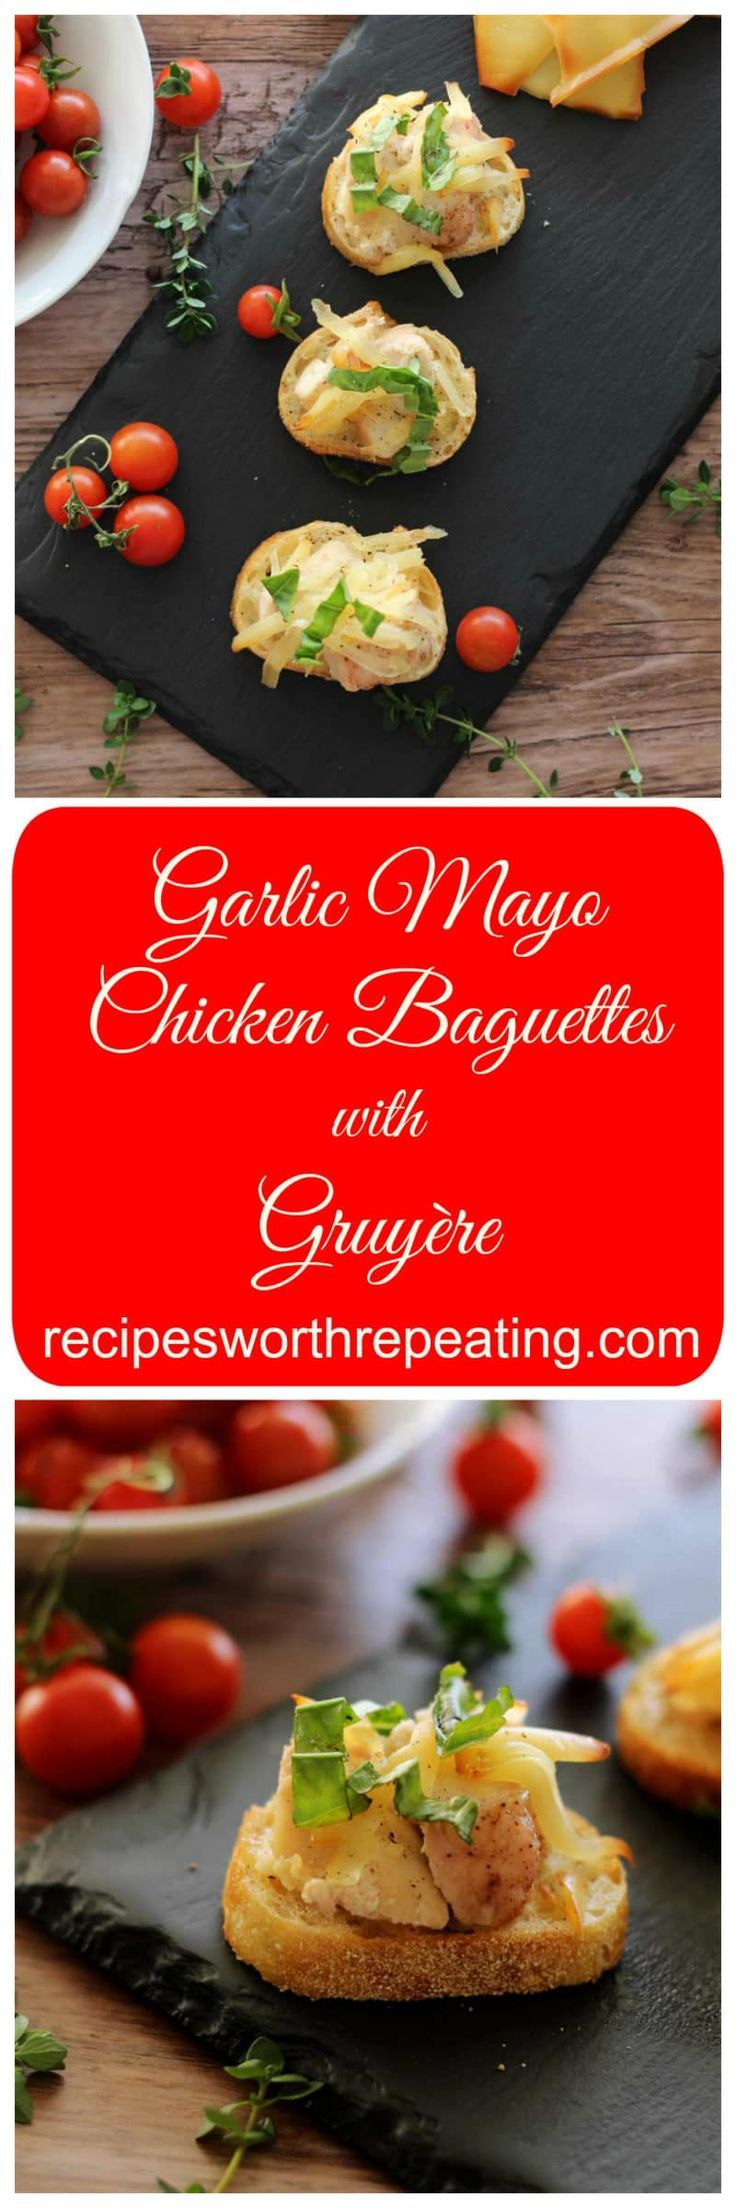 Garlic Chicken Baguettes with Gruyere Cheese | Recipes Worth Repeating | Snack | Gluten Free | Appetizer | Basil |